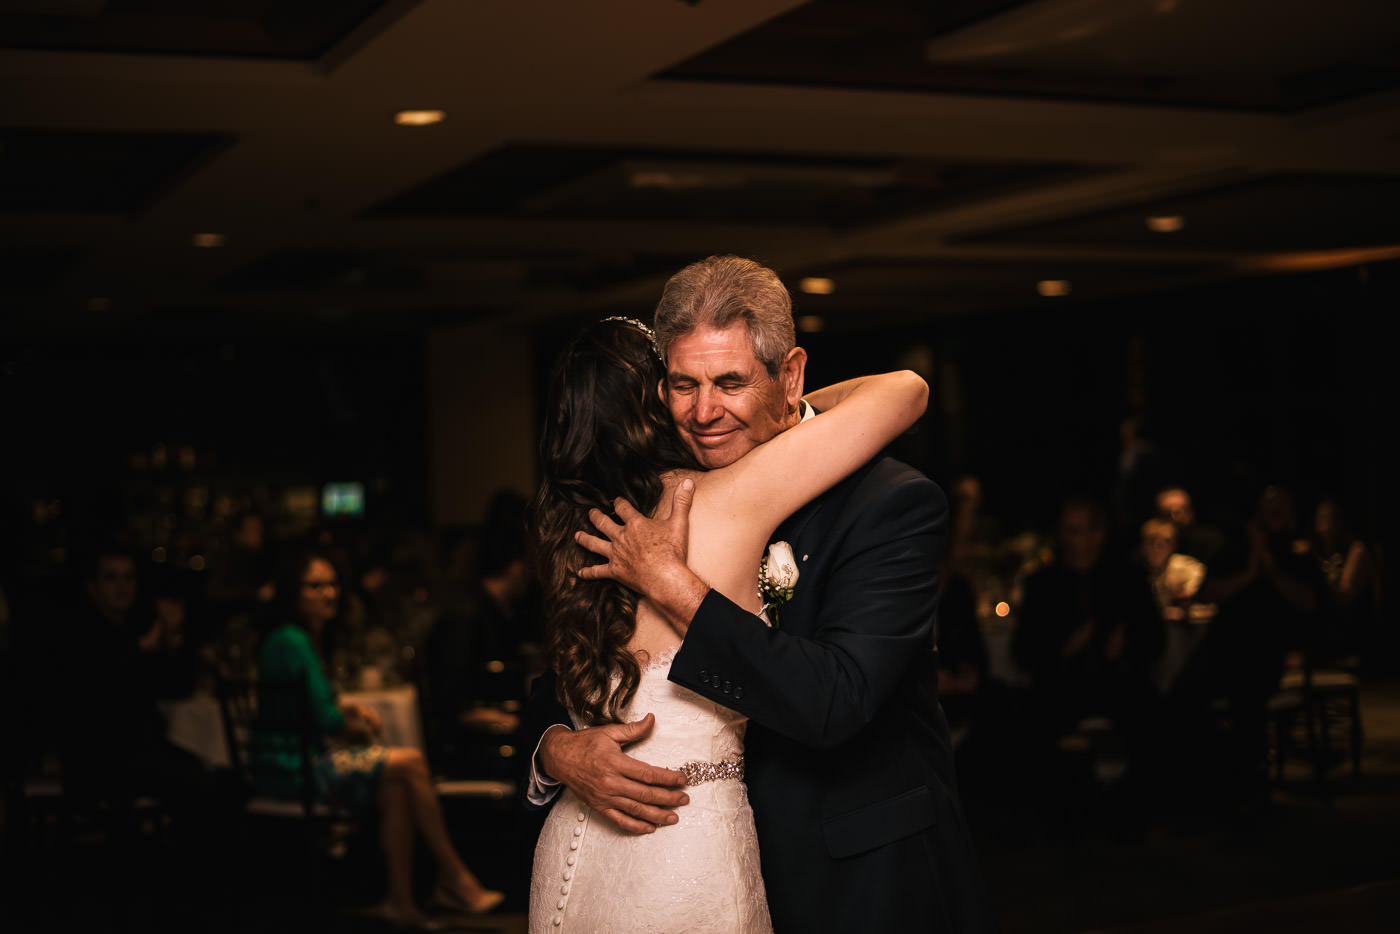 Father hugs his daughter tightly at her reception.